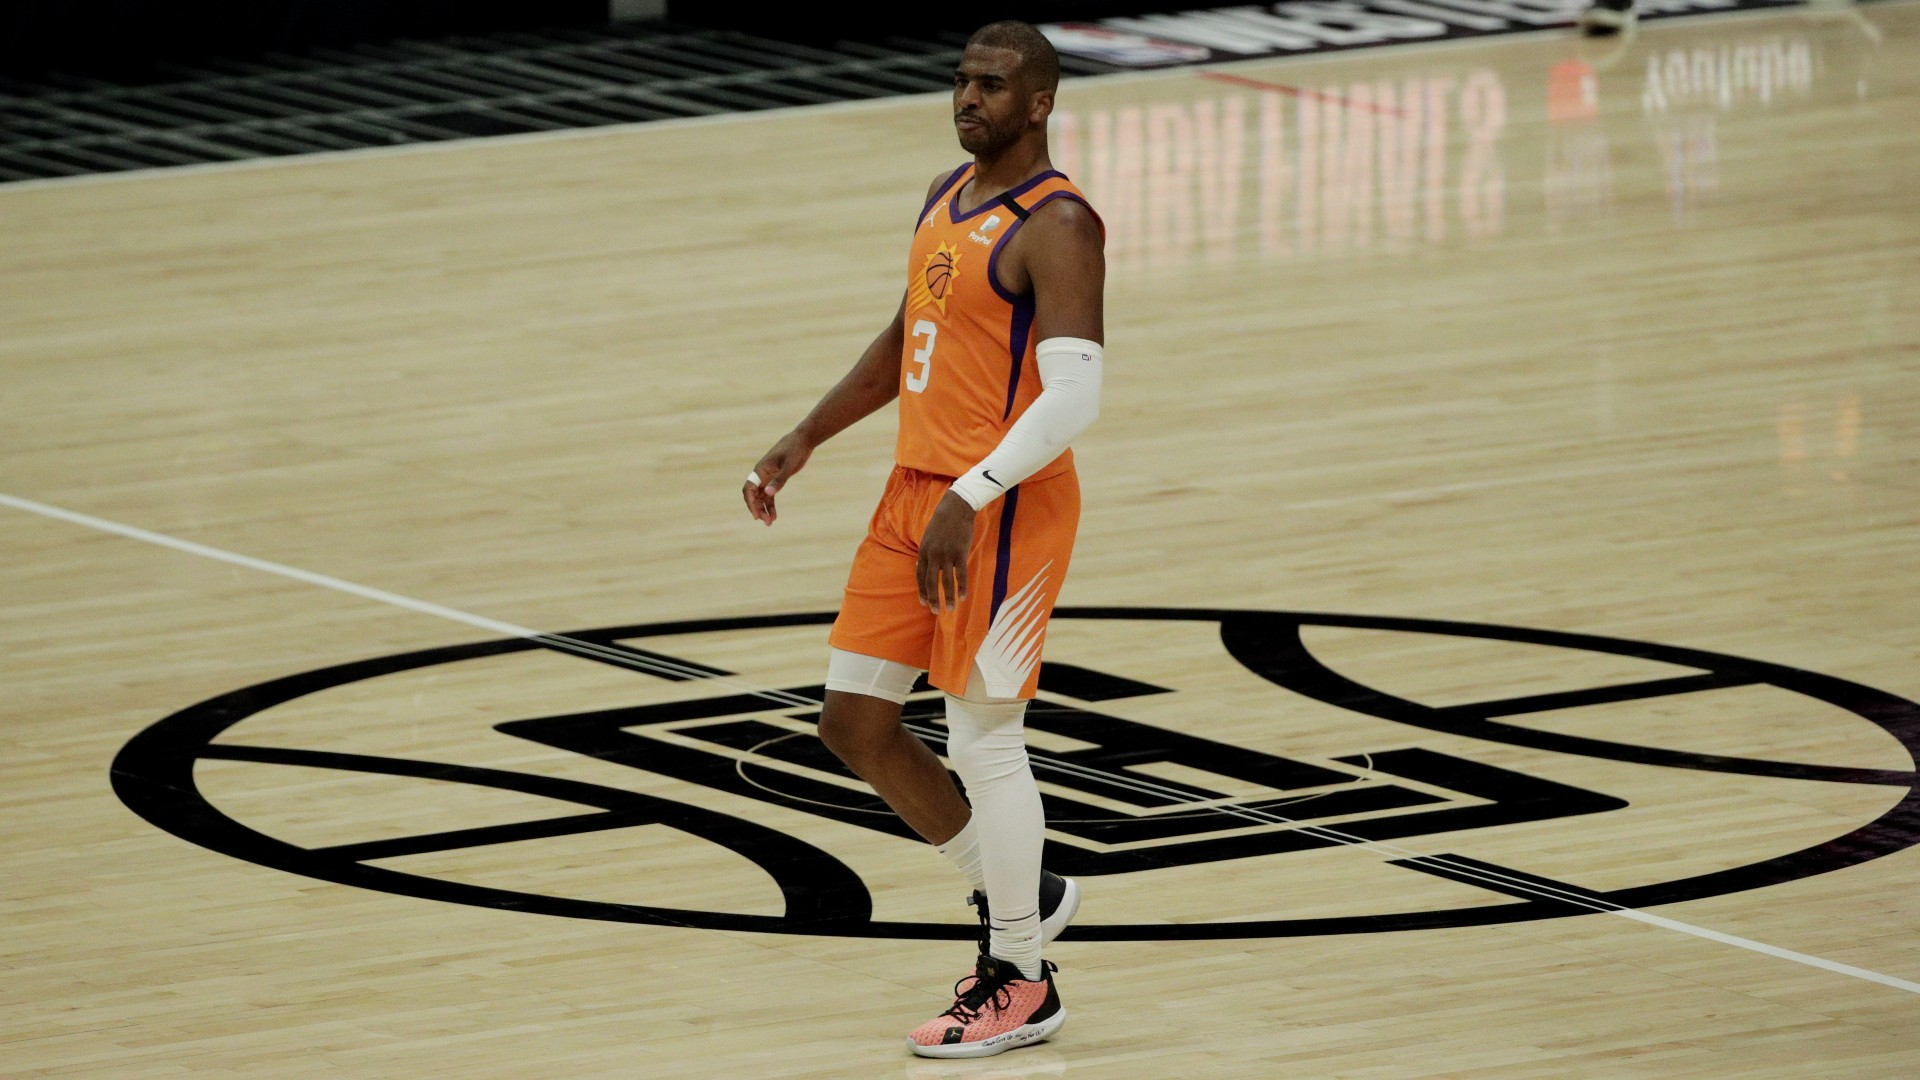 Chris Paul free agency rumors: Suns point guard rejects $ 44 million player option, report says